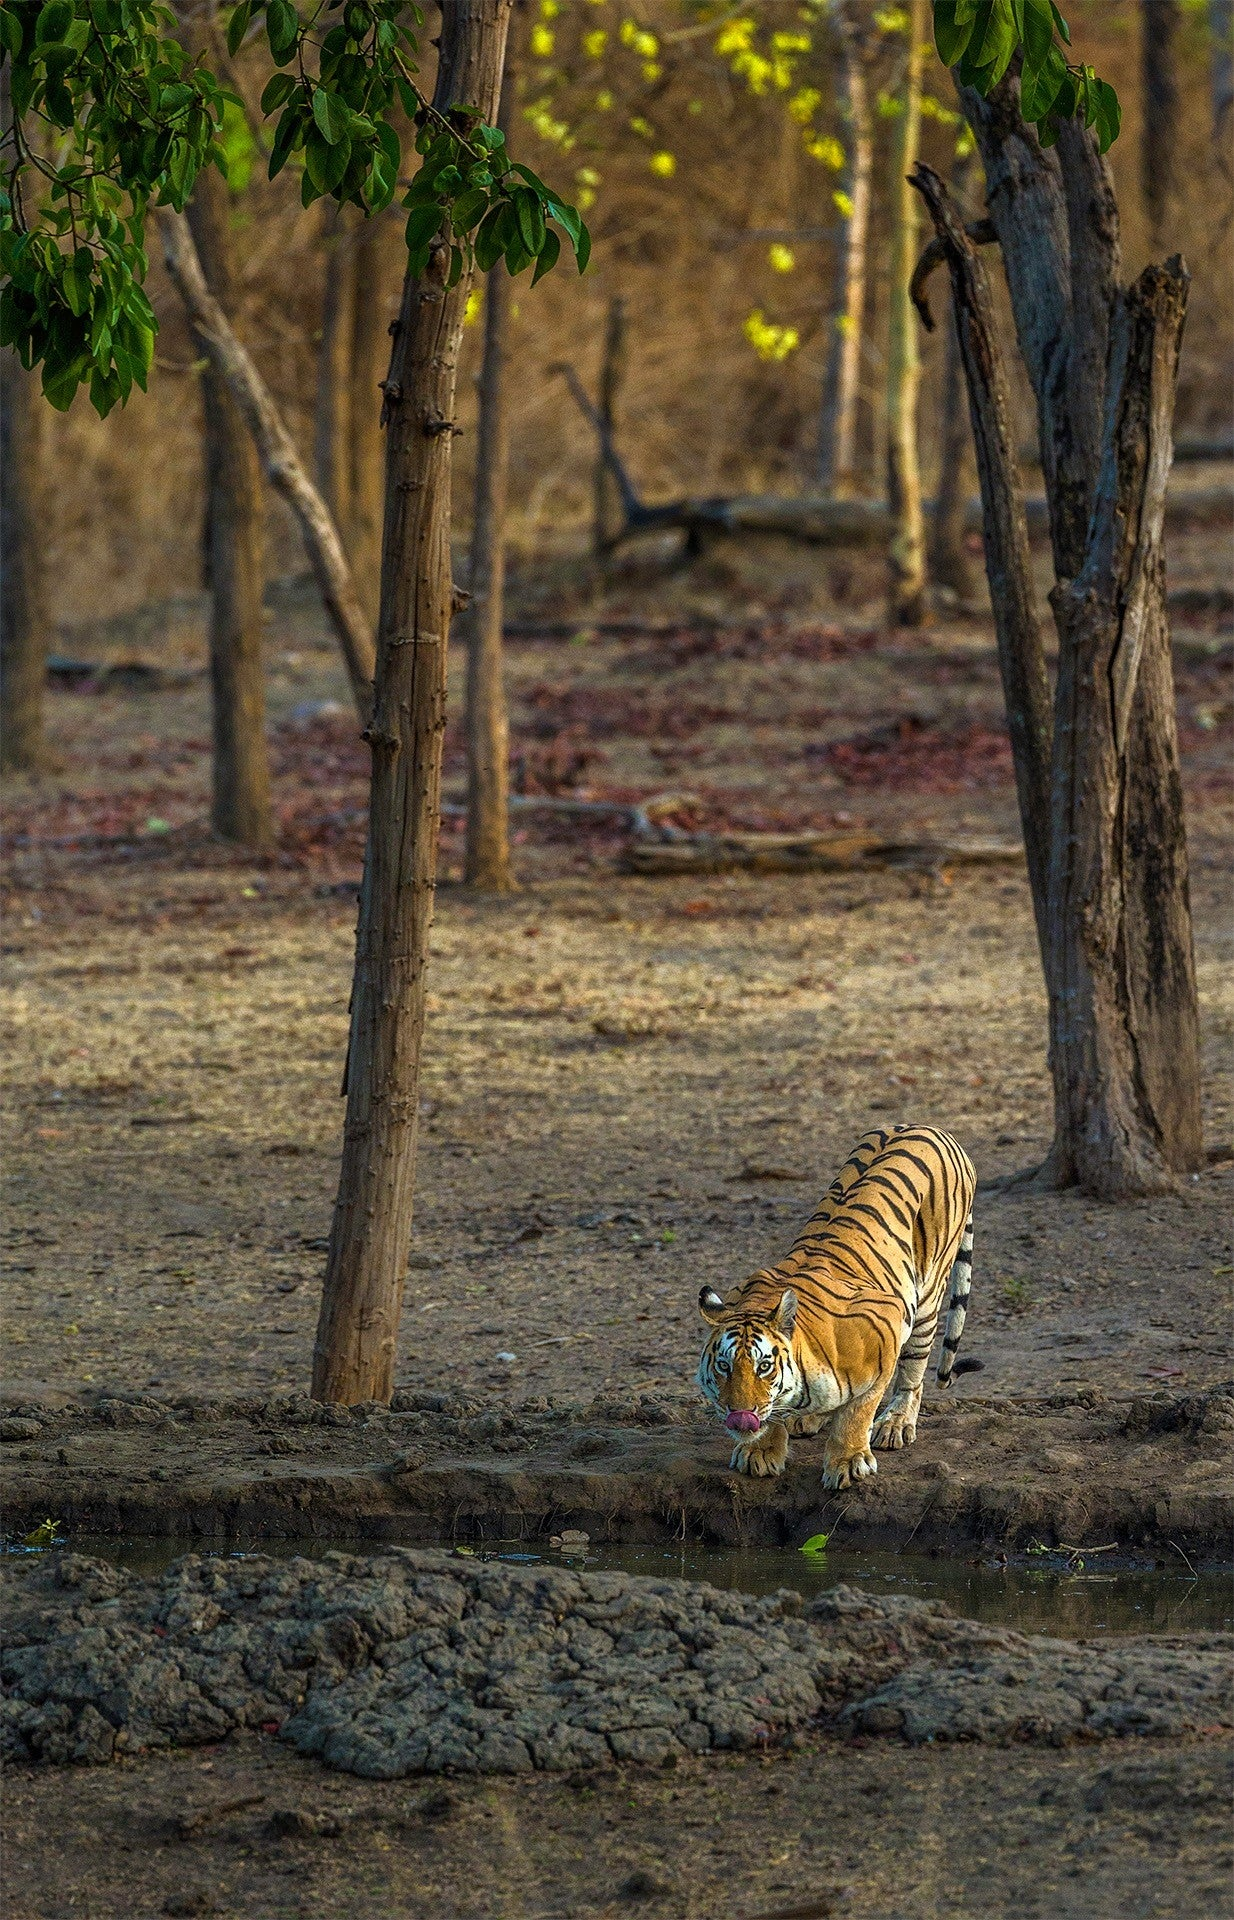 free-pench-tiger-free-images-travelunbounded